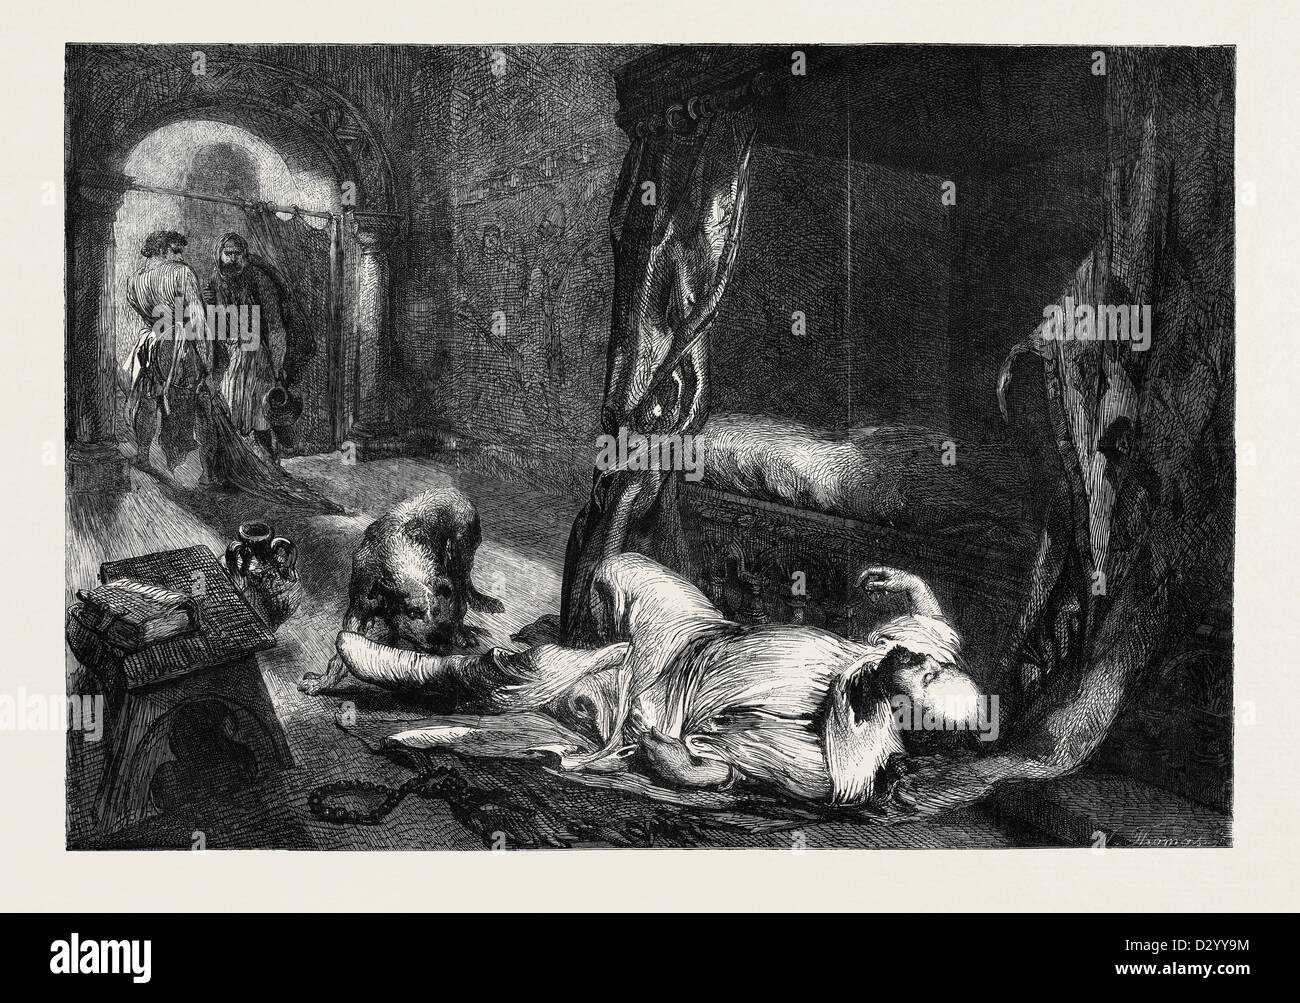 THE DEATH OF WILLIAM THE CONQUEROR DRAWN BY J. GILBERT - Stock Image